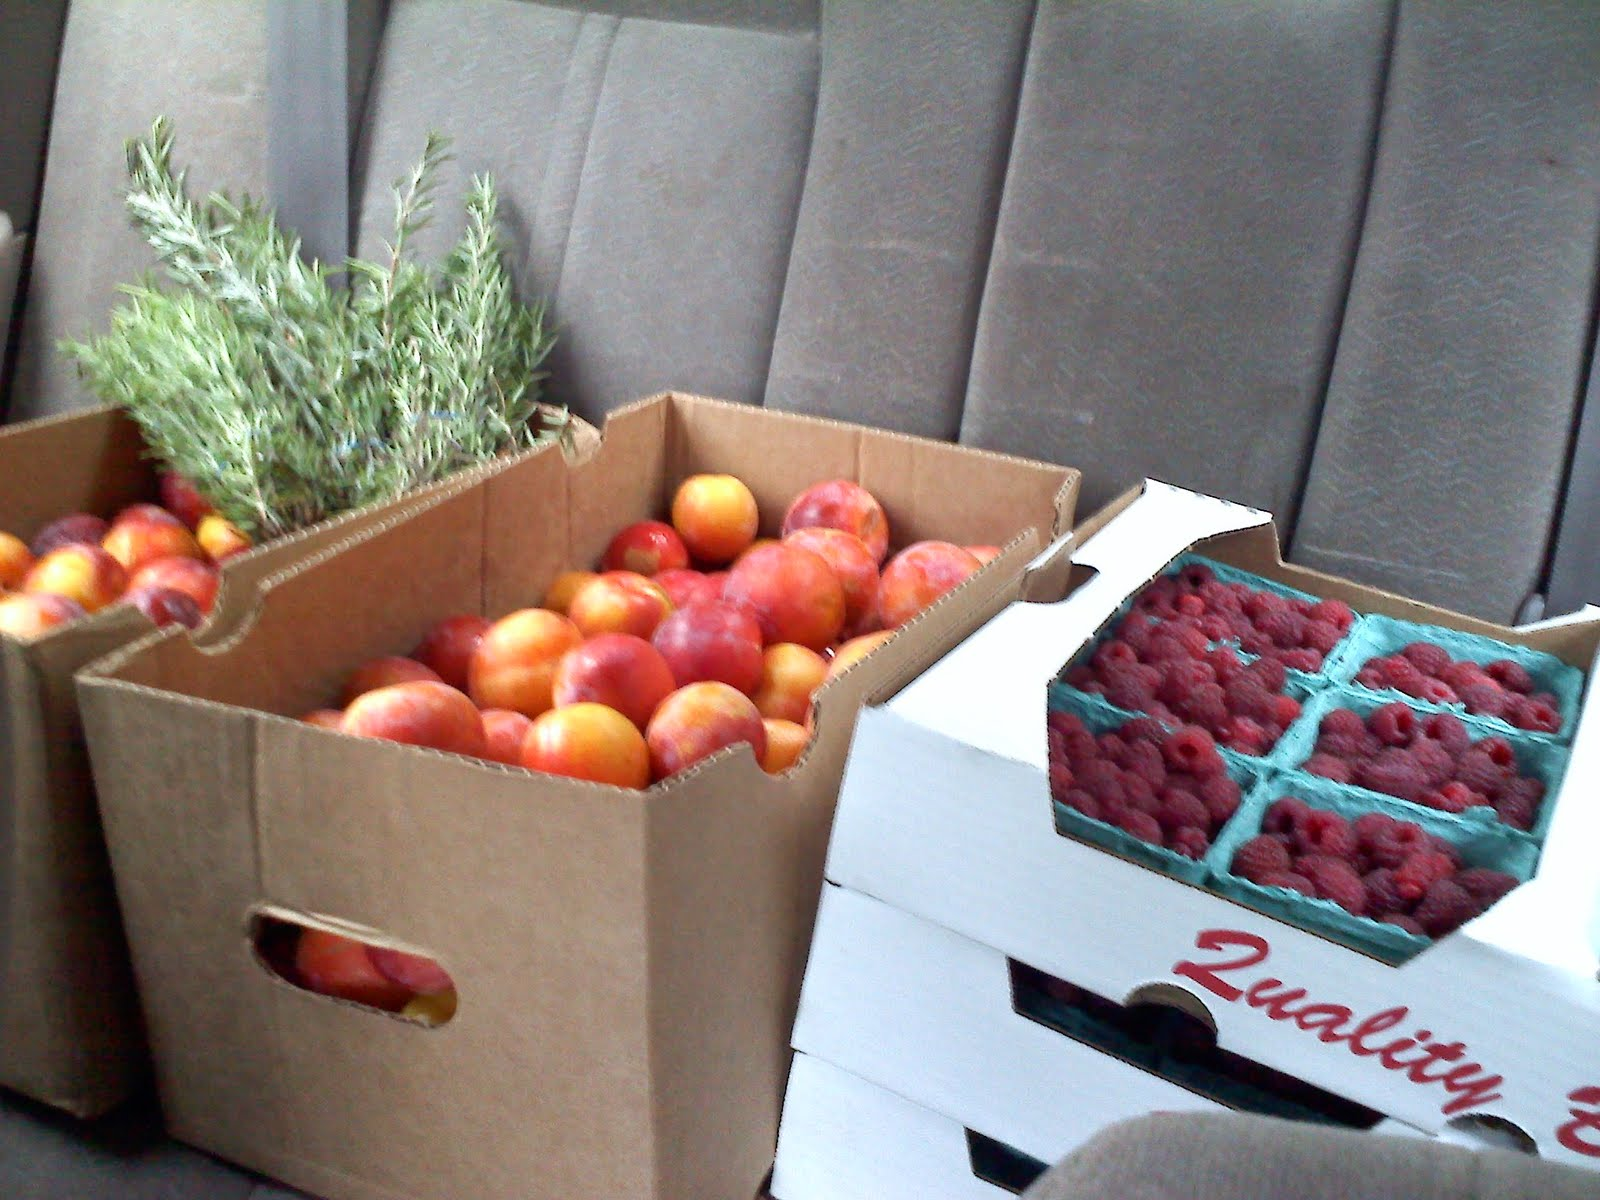 The back of the car after my early morning farm market run.